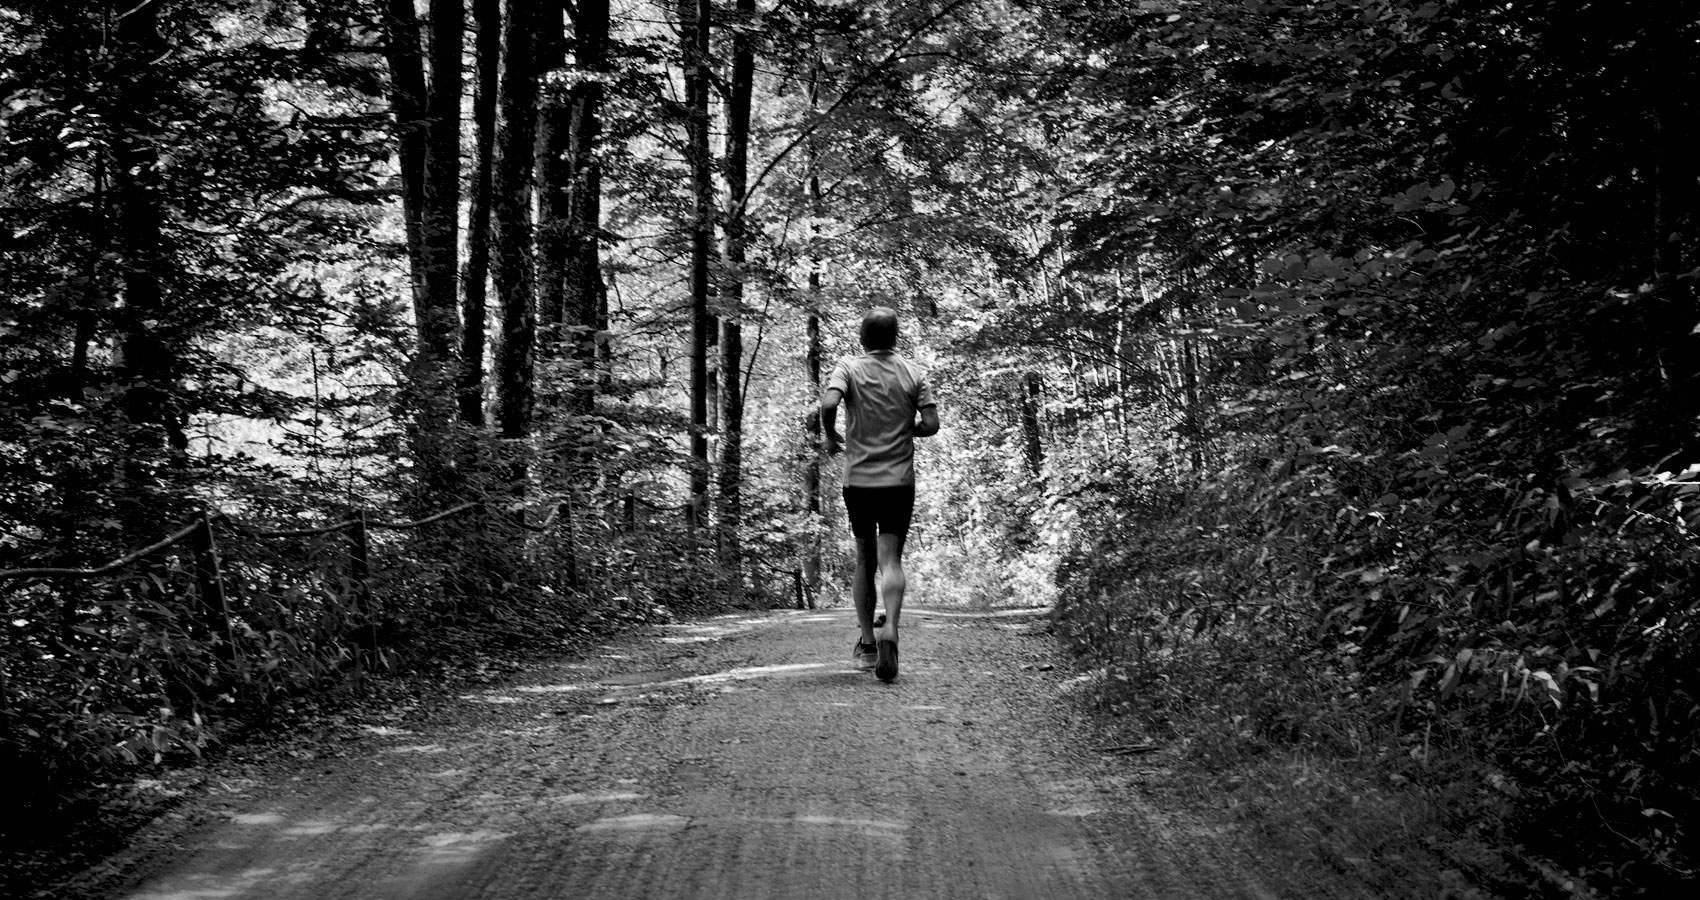 The Aging Jogger written by Ian Fletcher at Spillwords.com